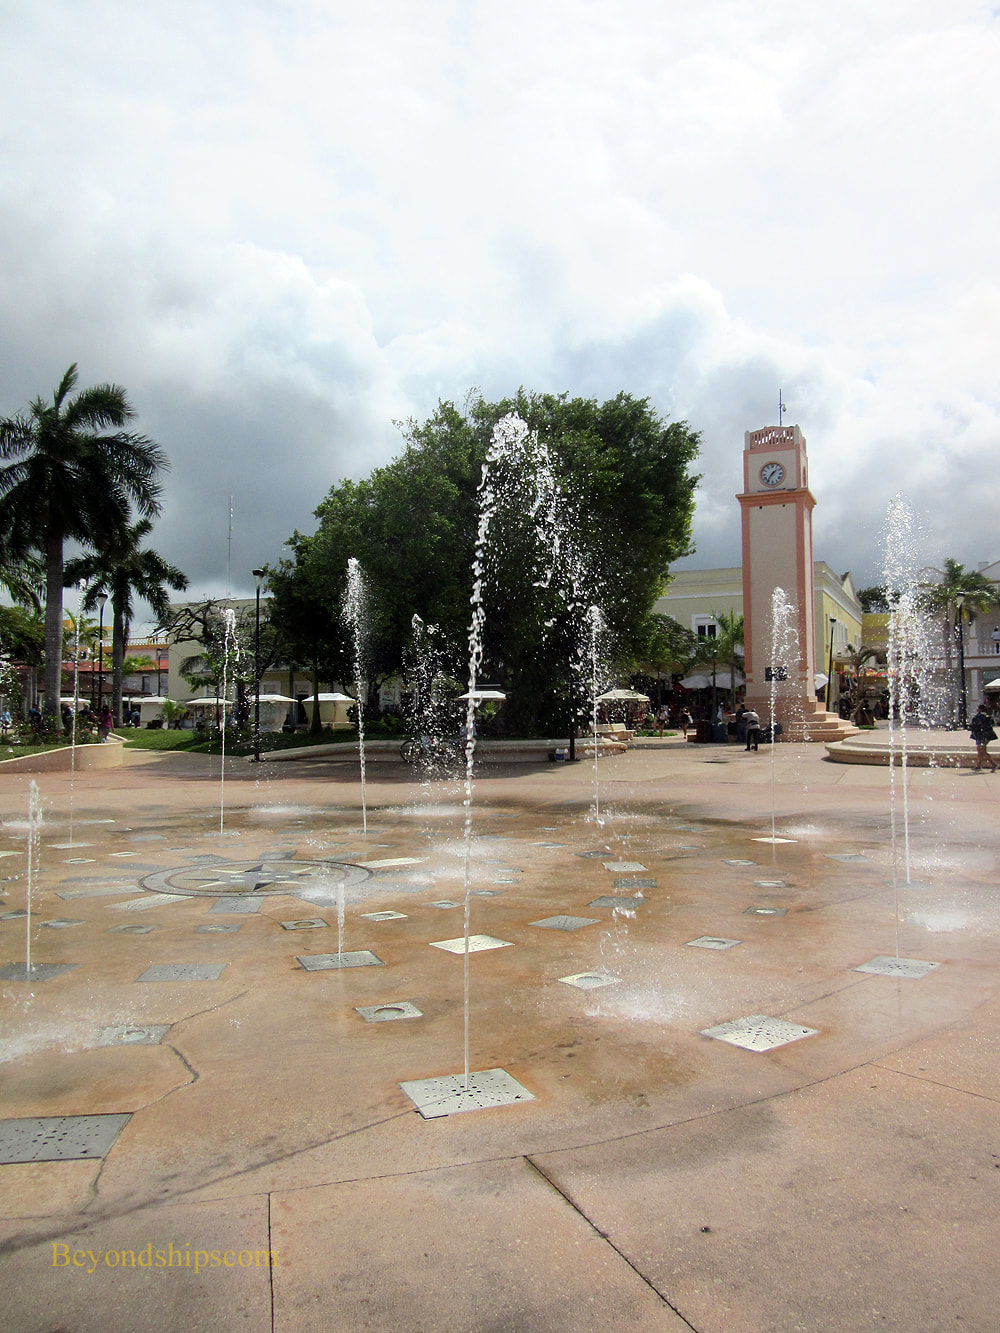 Town Square in San Miguel, Cozumel, Mexico